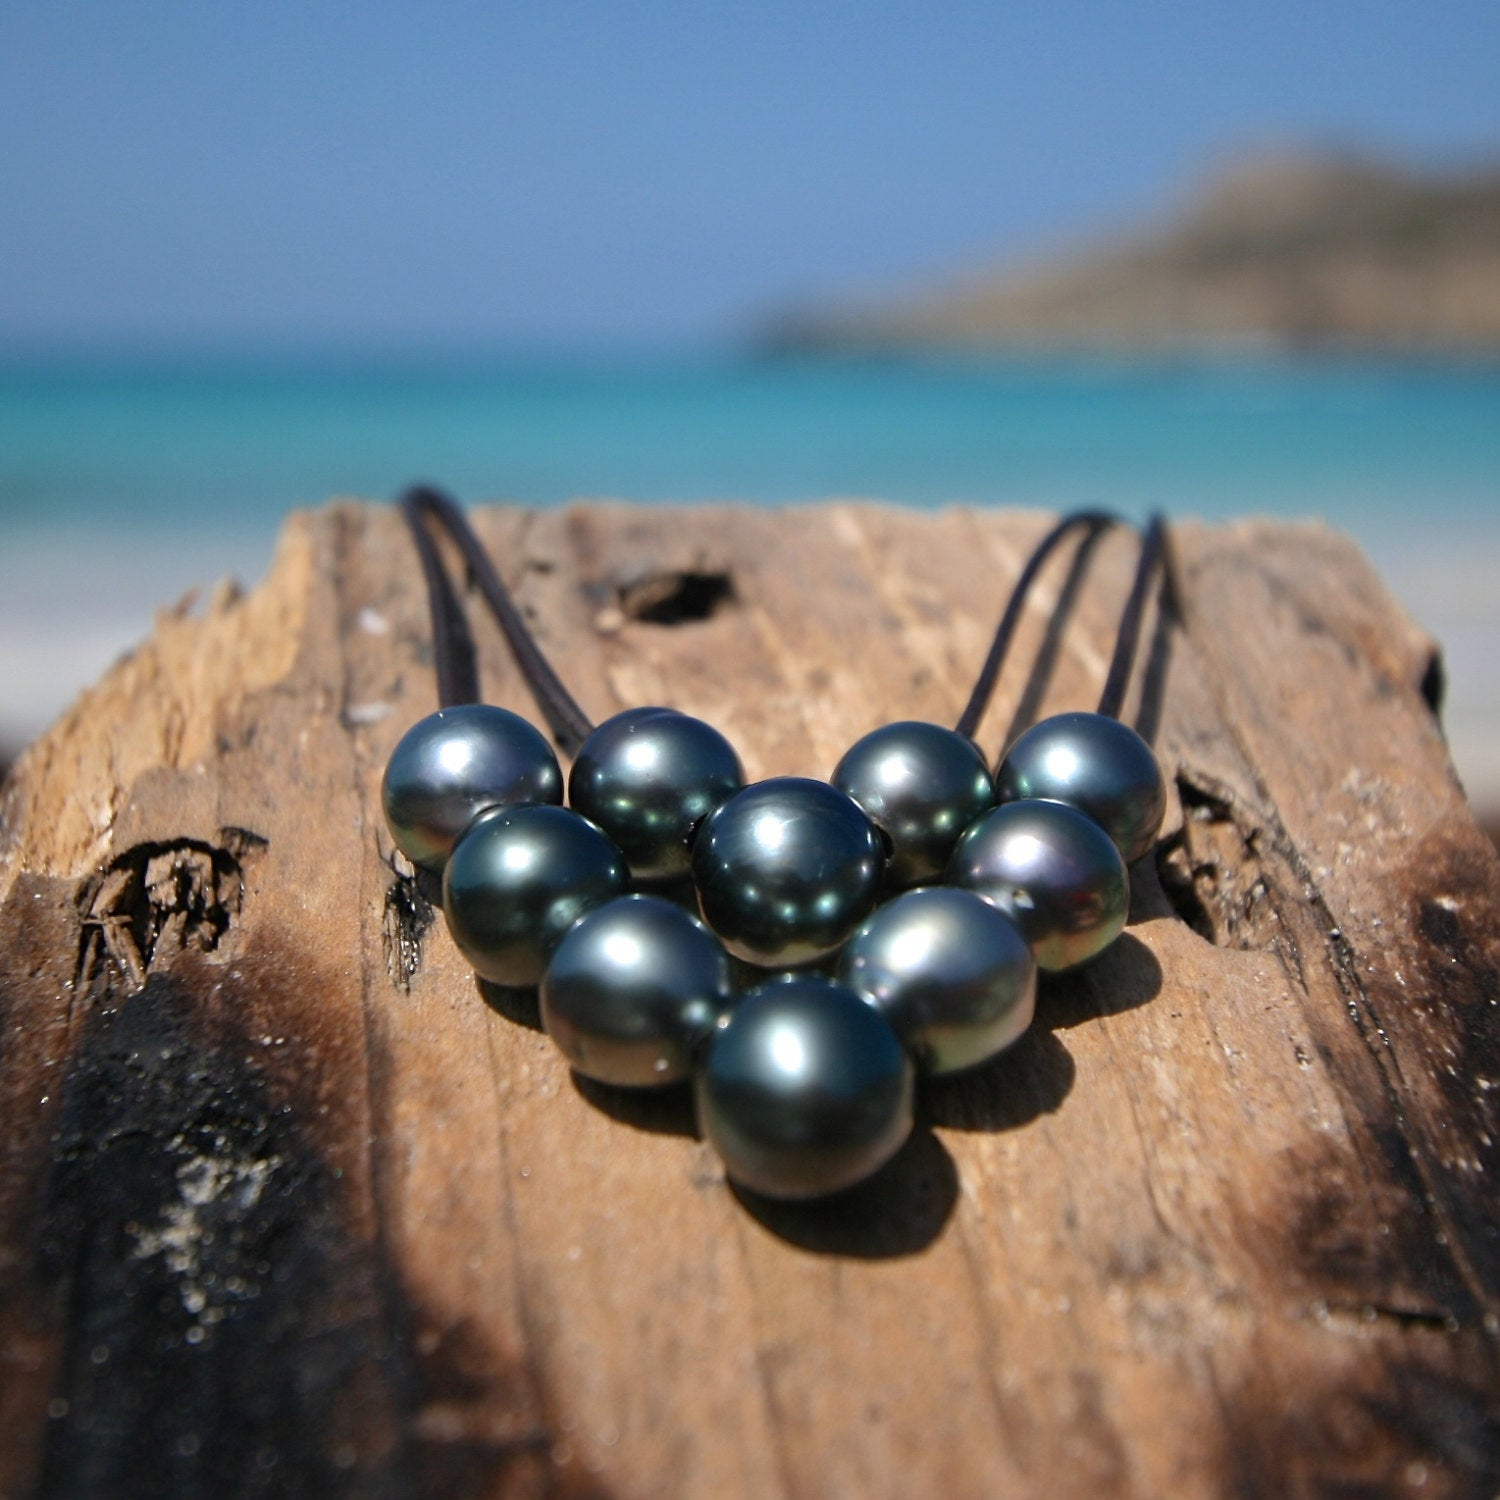 Pearls and leather necklace for women, seaside beach jewelry, Tahitian black cultured pearls, pearl choker, pearl pendant, St Barts jewelry.